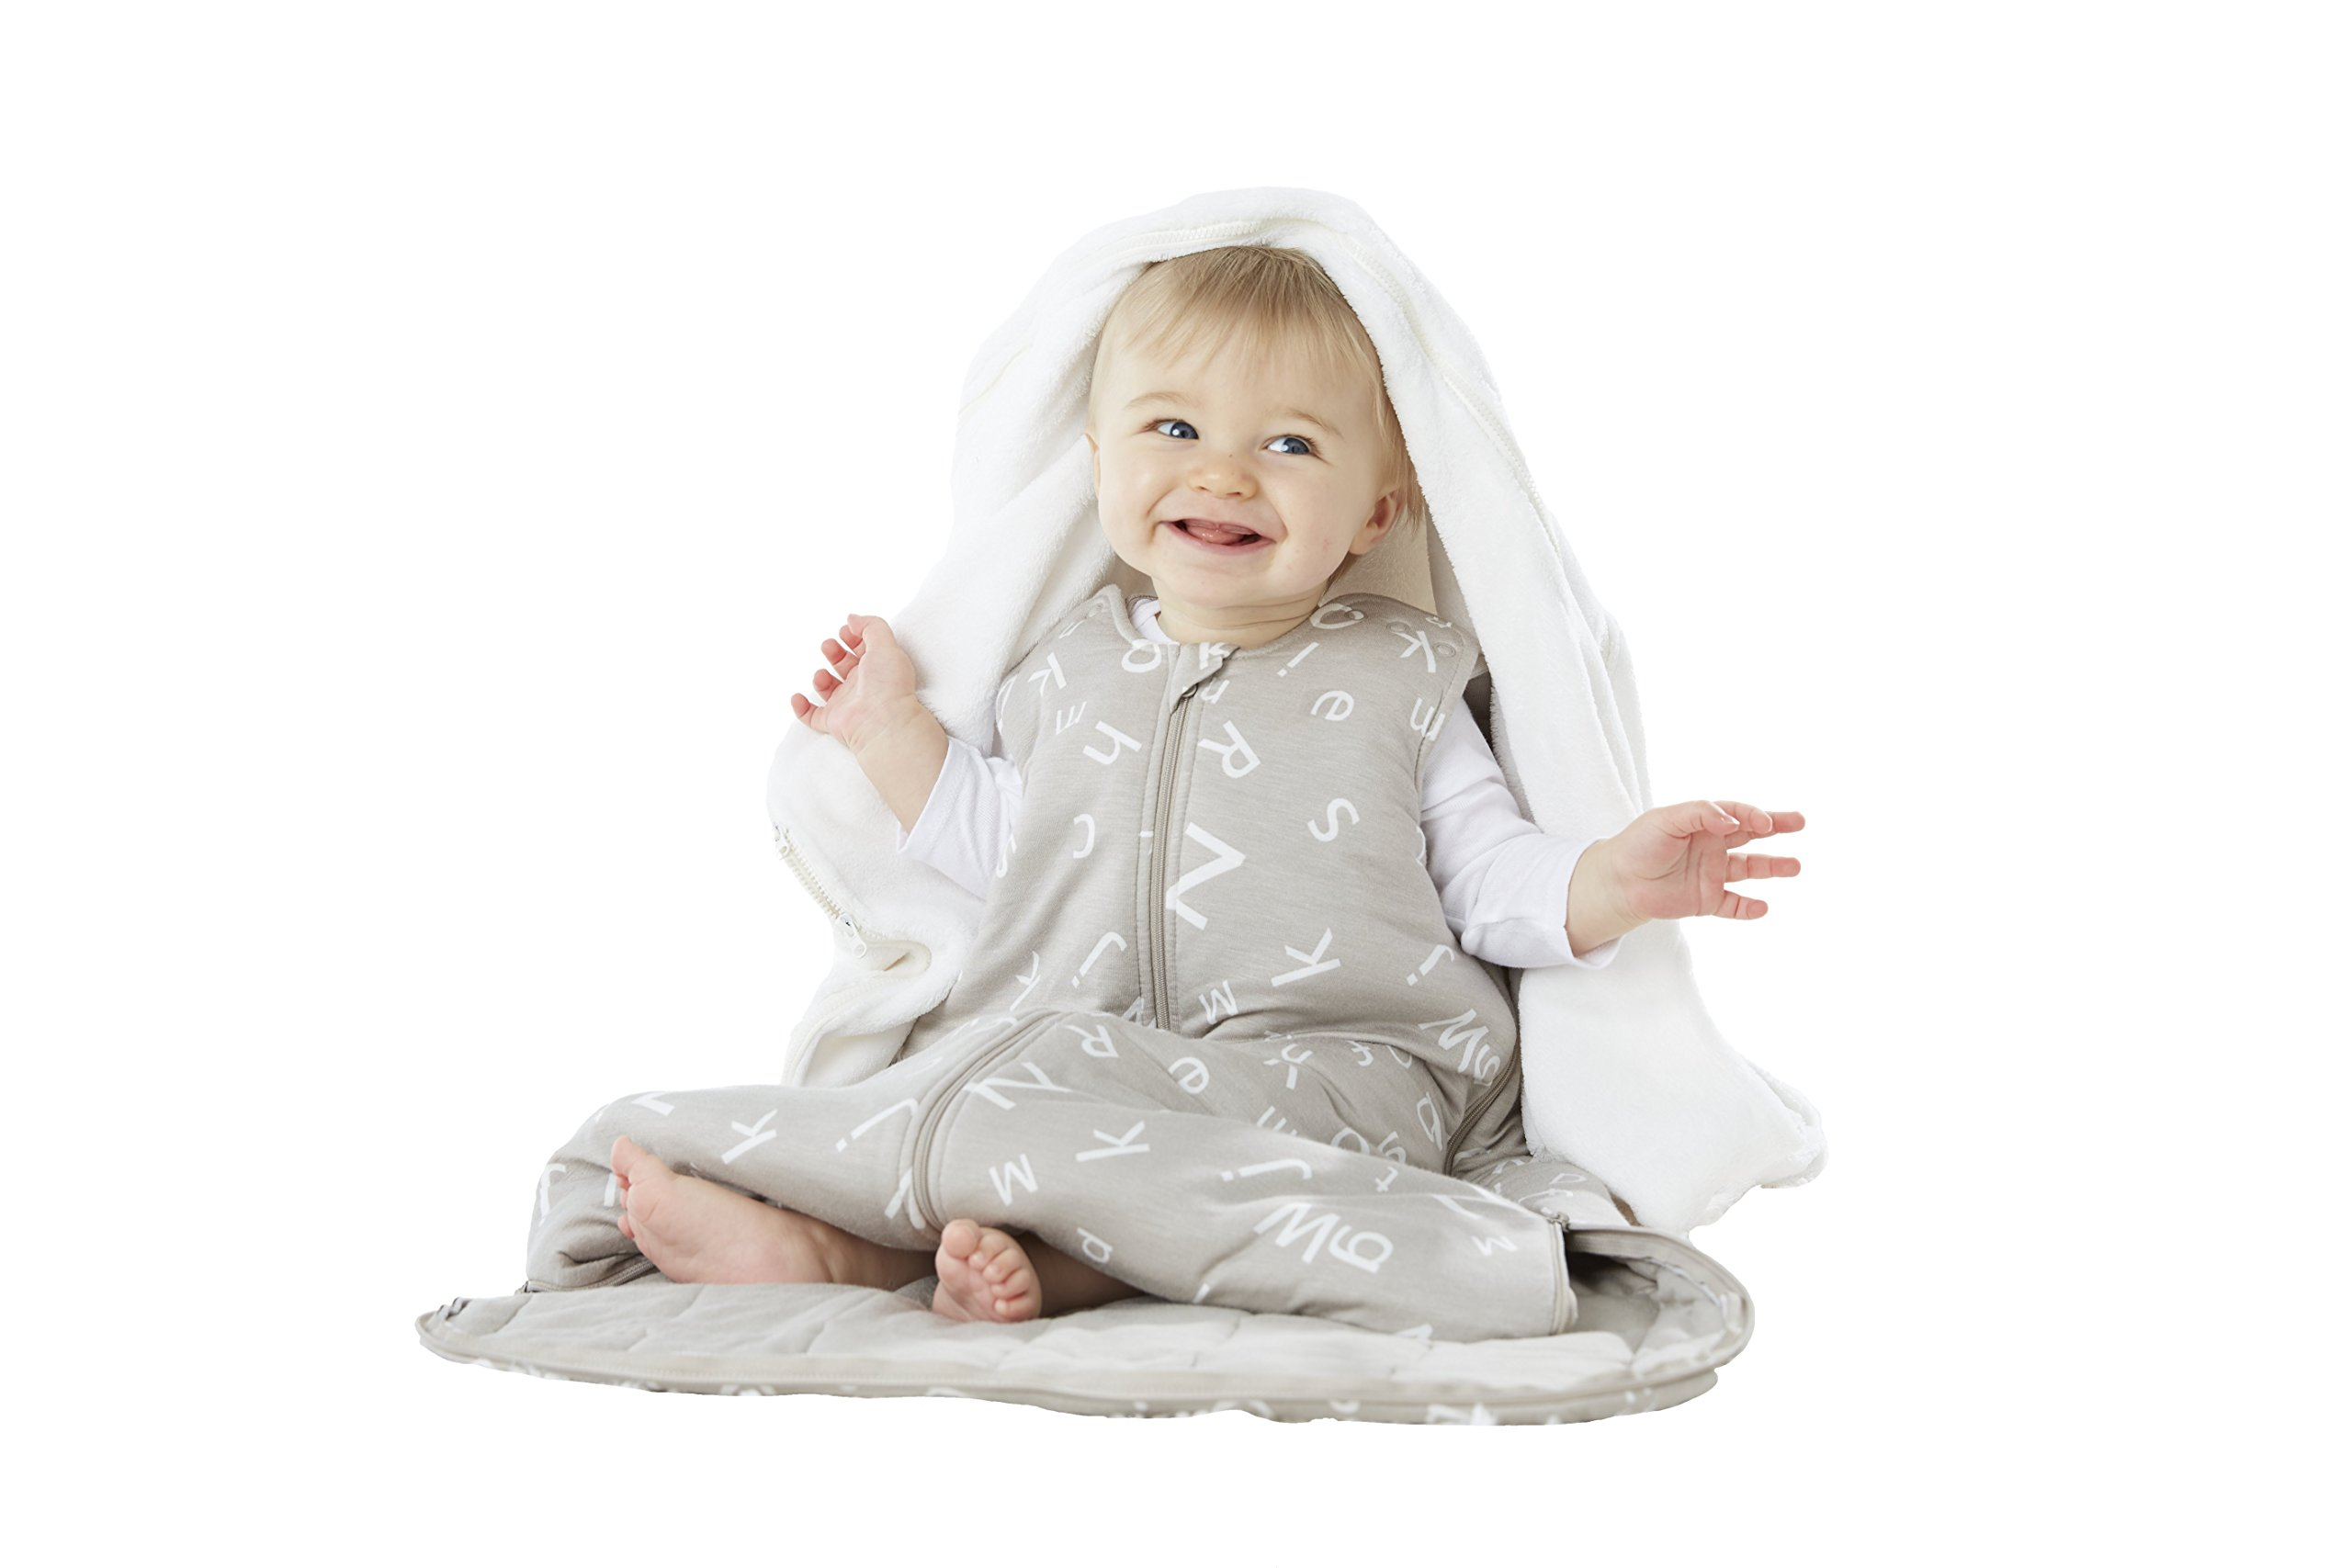 Gunapod Sleep Sack Luxury BambooRayon Unisex Wearable Blanket Baby Sleeping Bag with WONDERZiP